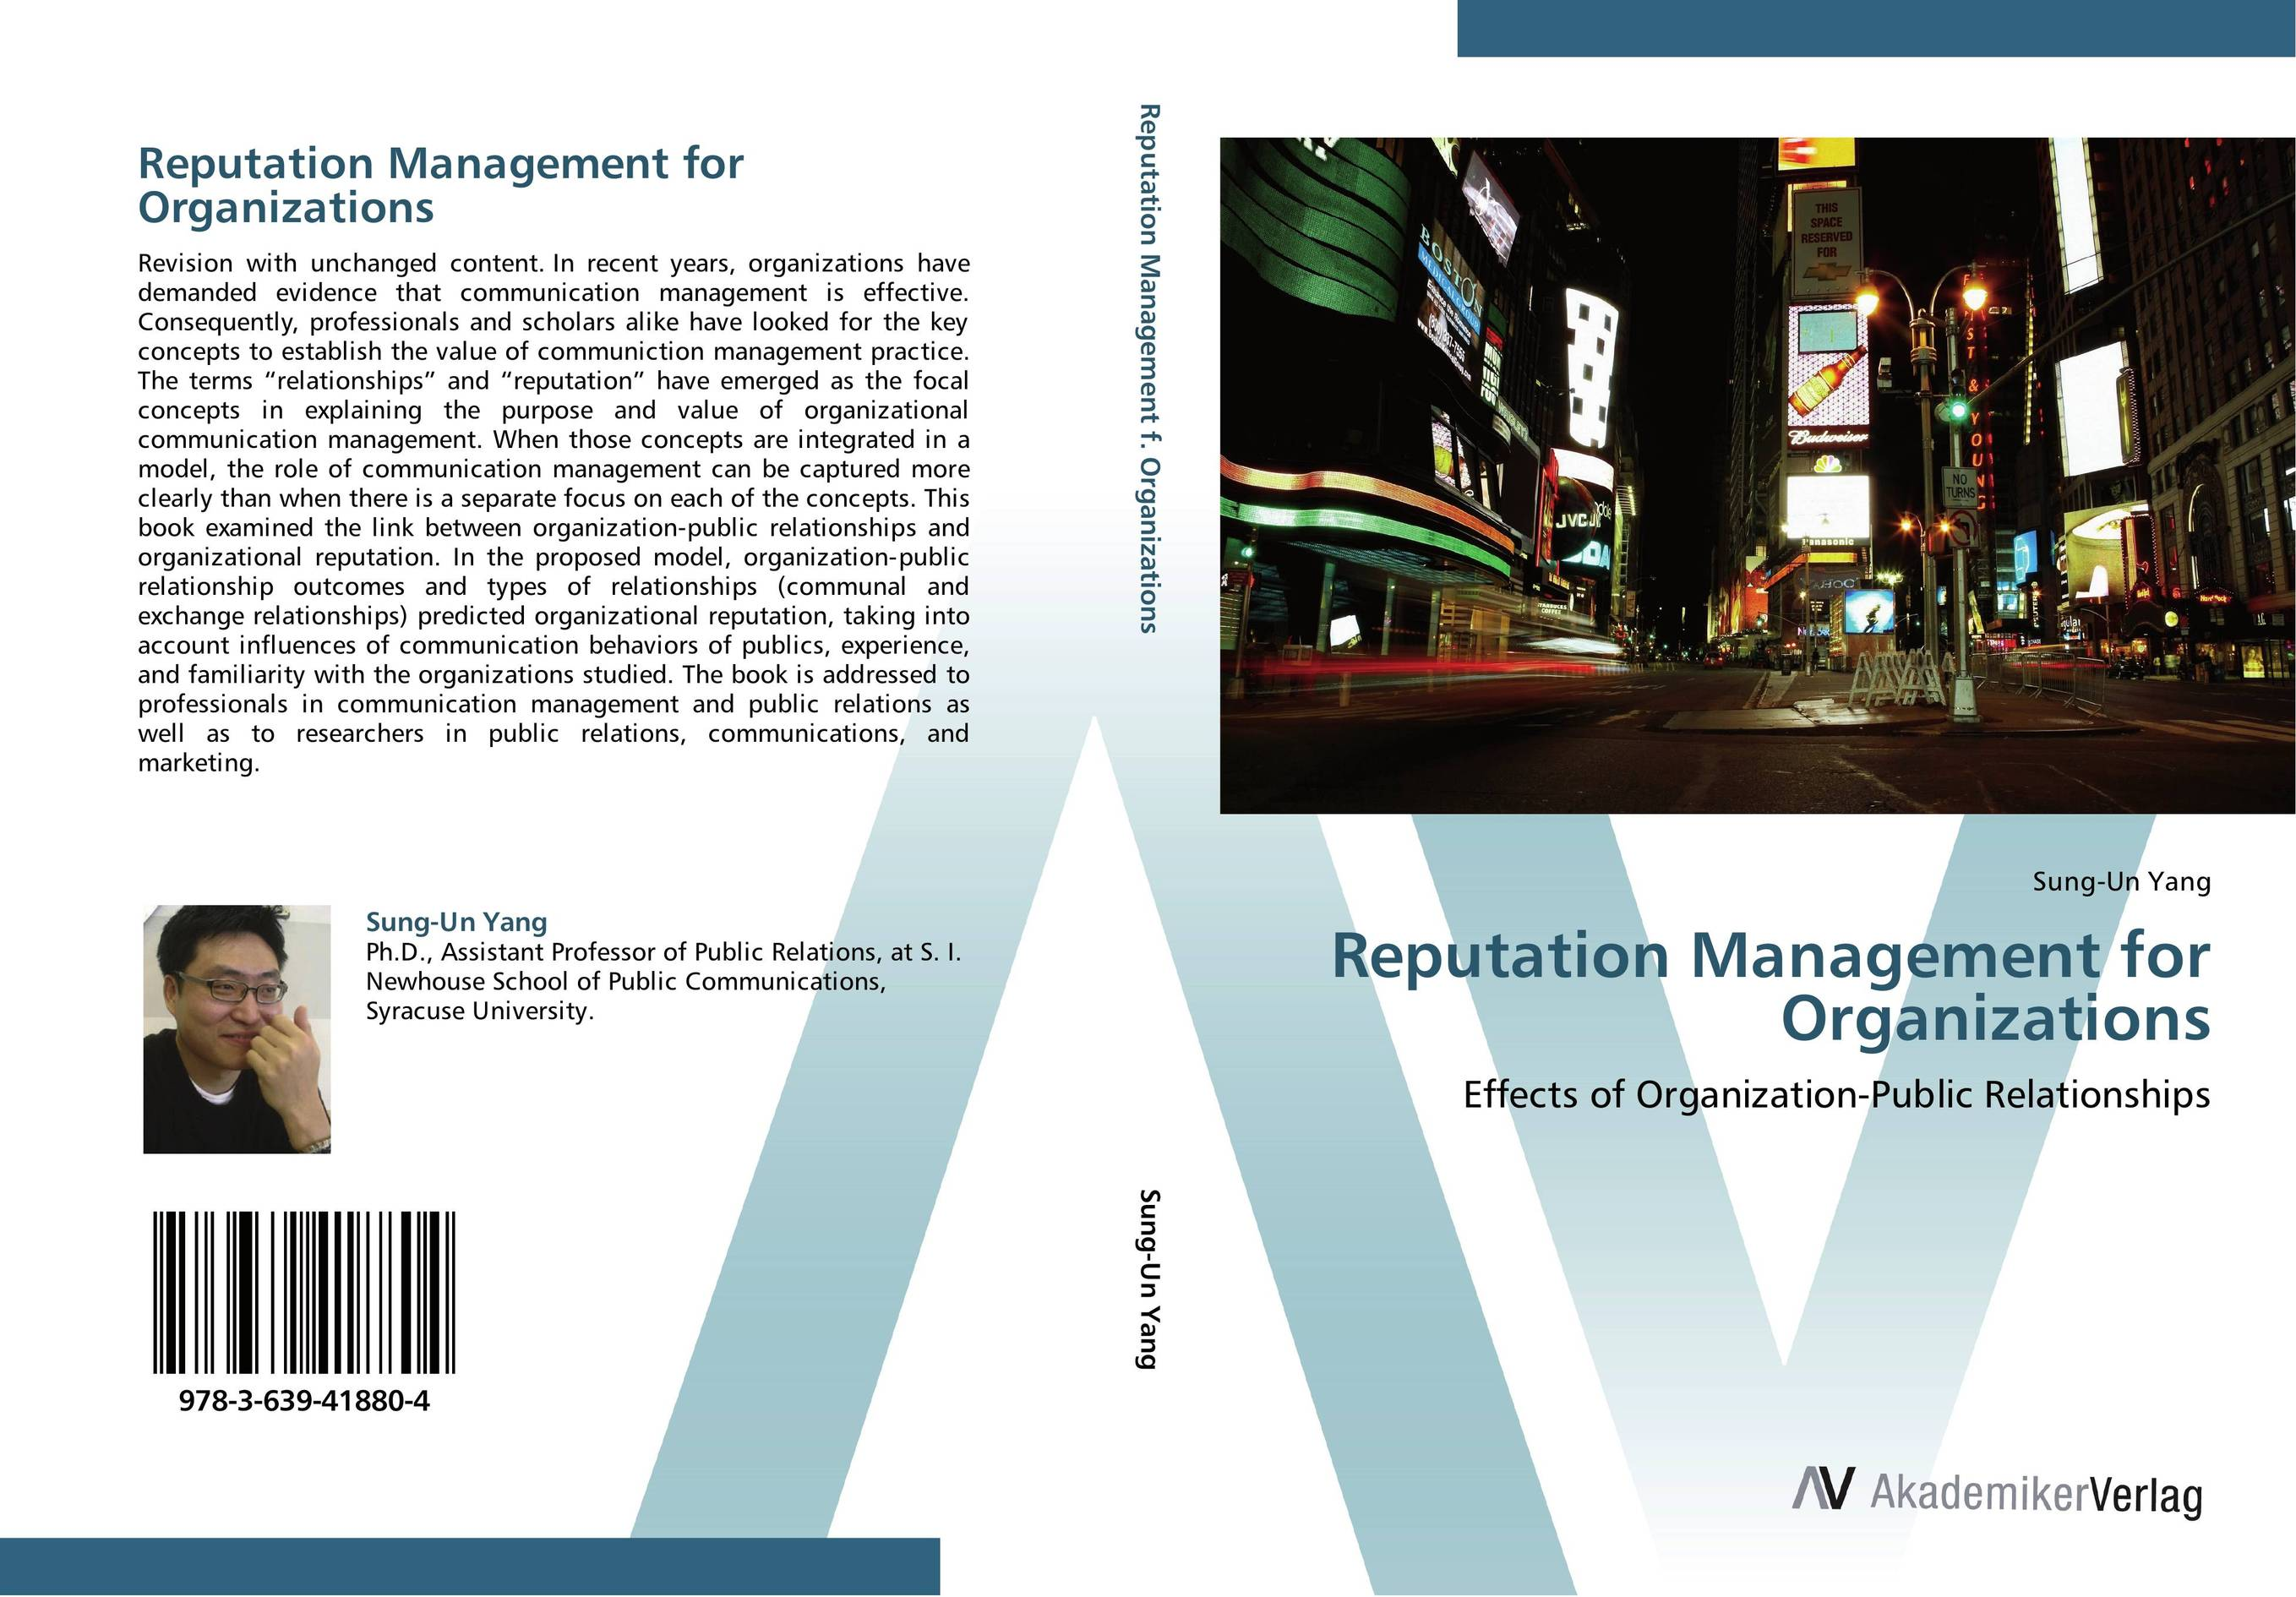 Reputation Management for Organizations